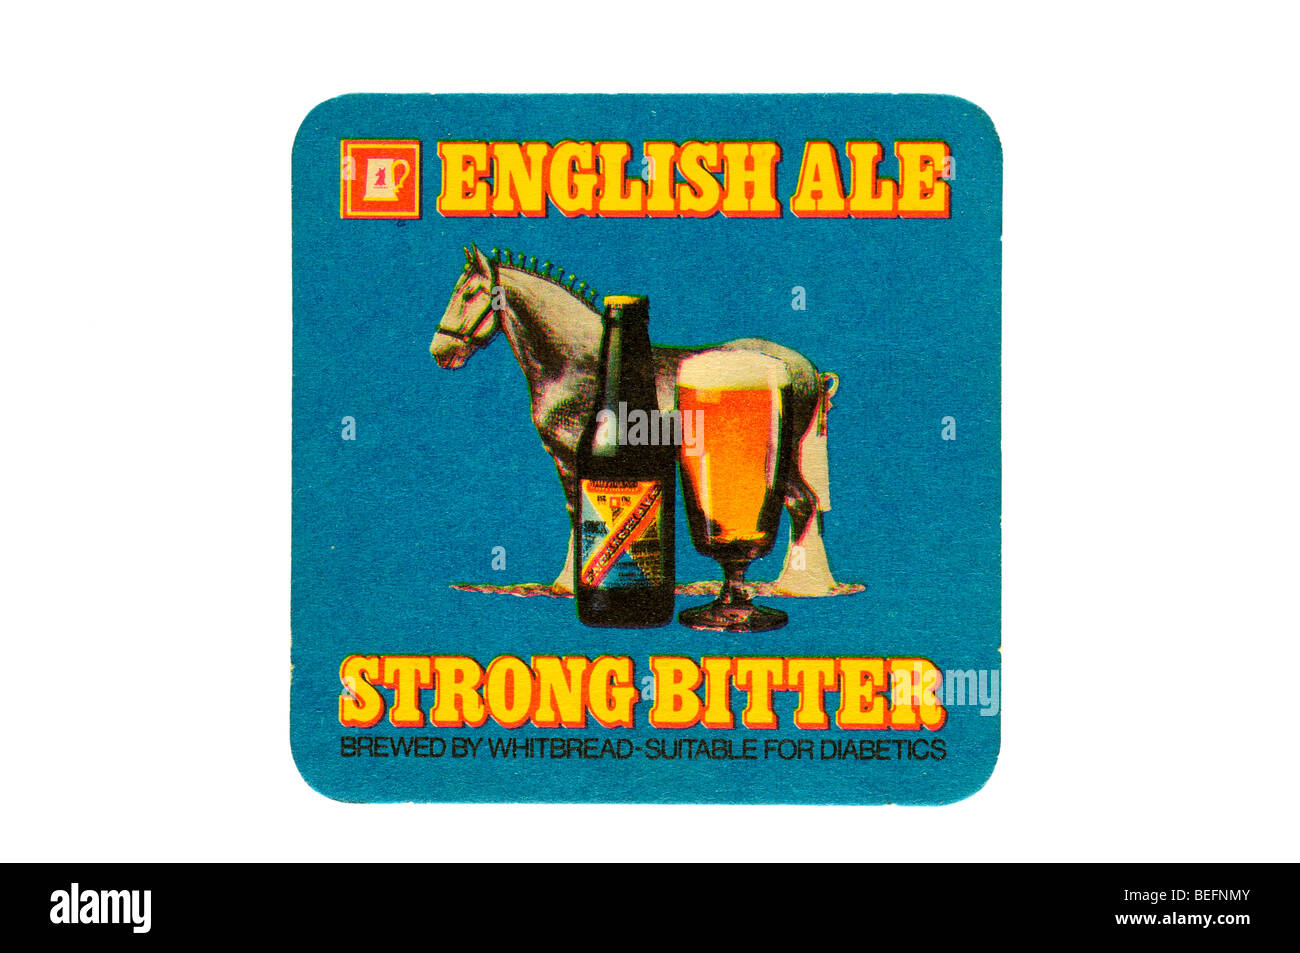 english ale strong bitter brewed by whitbread suitable for diabetics - Stock Image